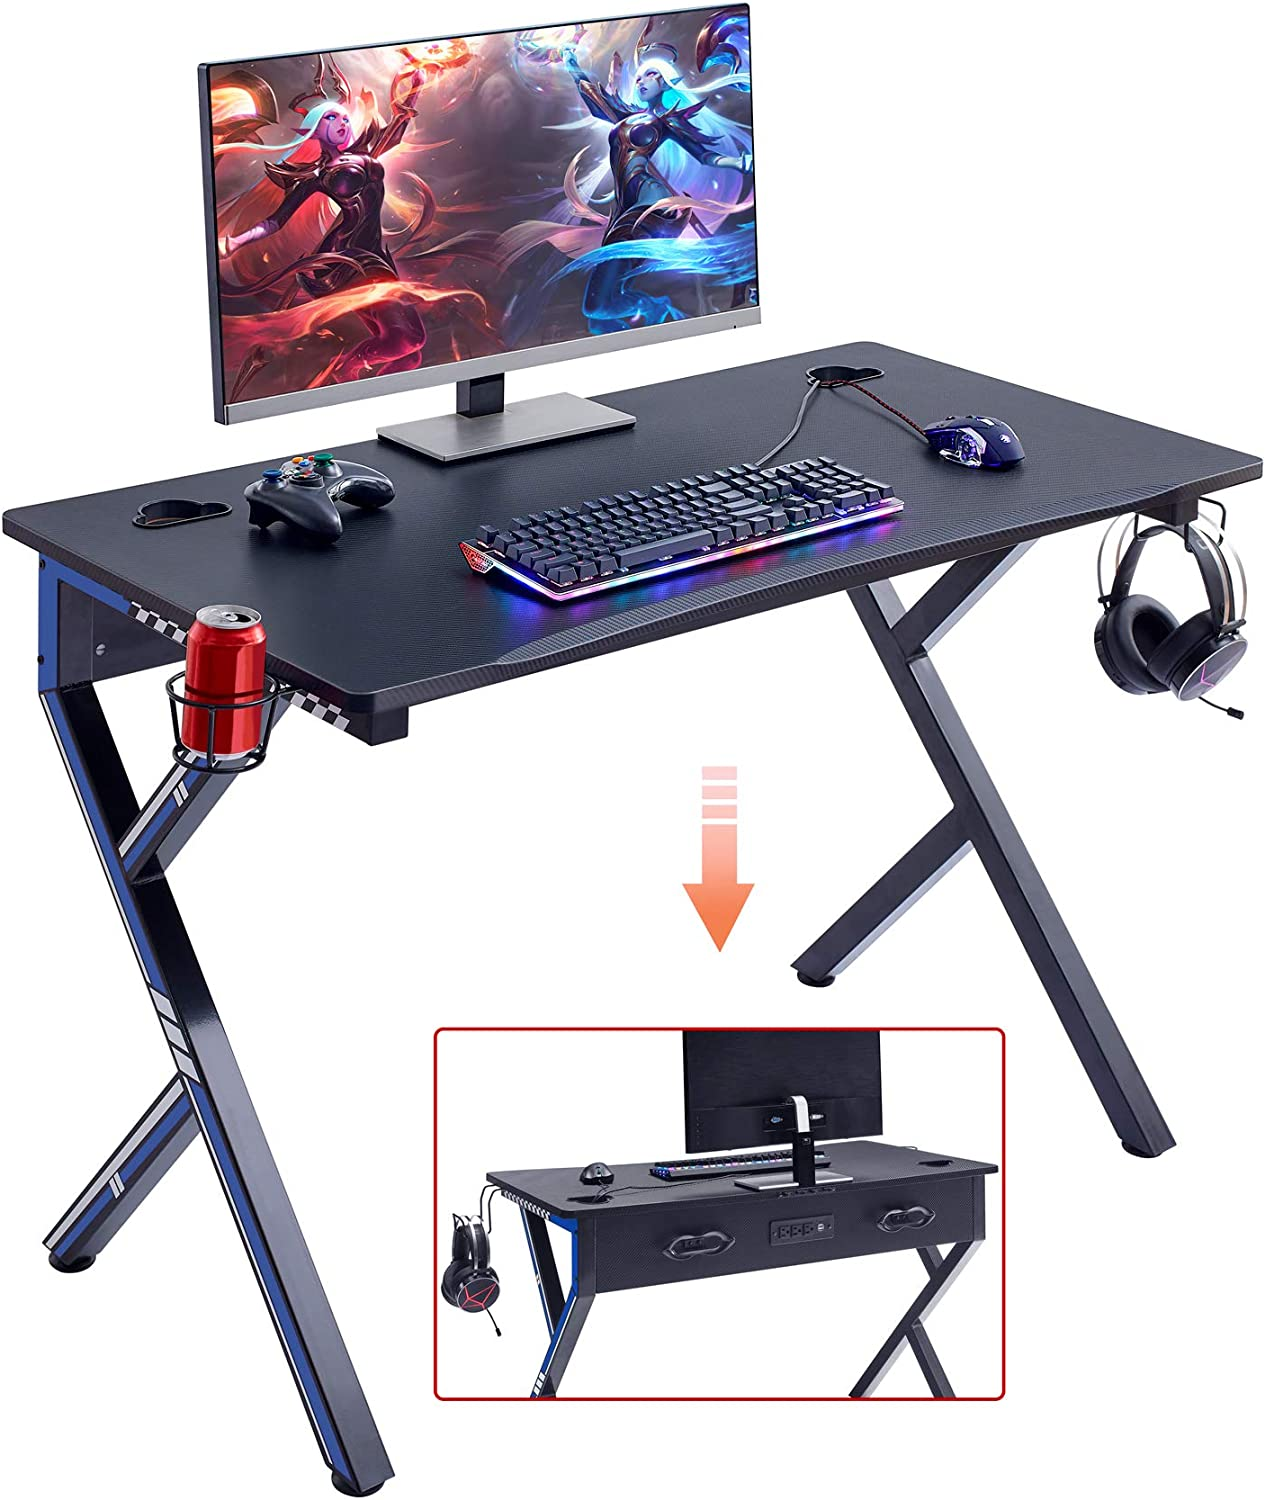 """Mr IRONSTONE Gaming Desk 45.2"""" W x 23.6"""" D Home Office Desk, Gaming Workstation with Power Strip of 3-Outlet & 2 USB Ports, Cup Holder, Headphone Hook, and Cable Management (Blue)"""